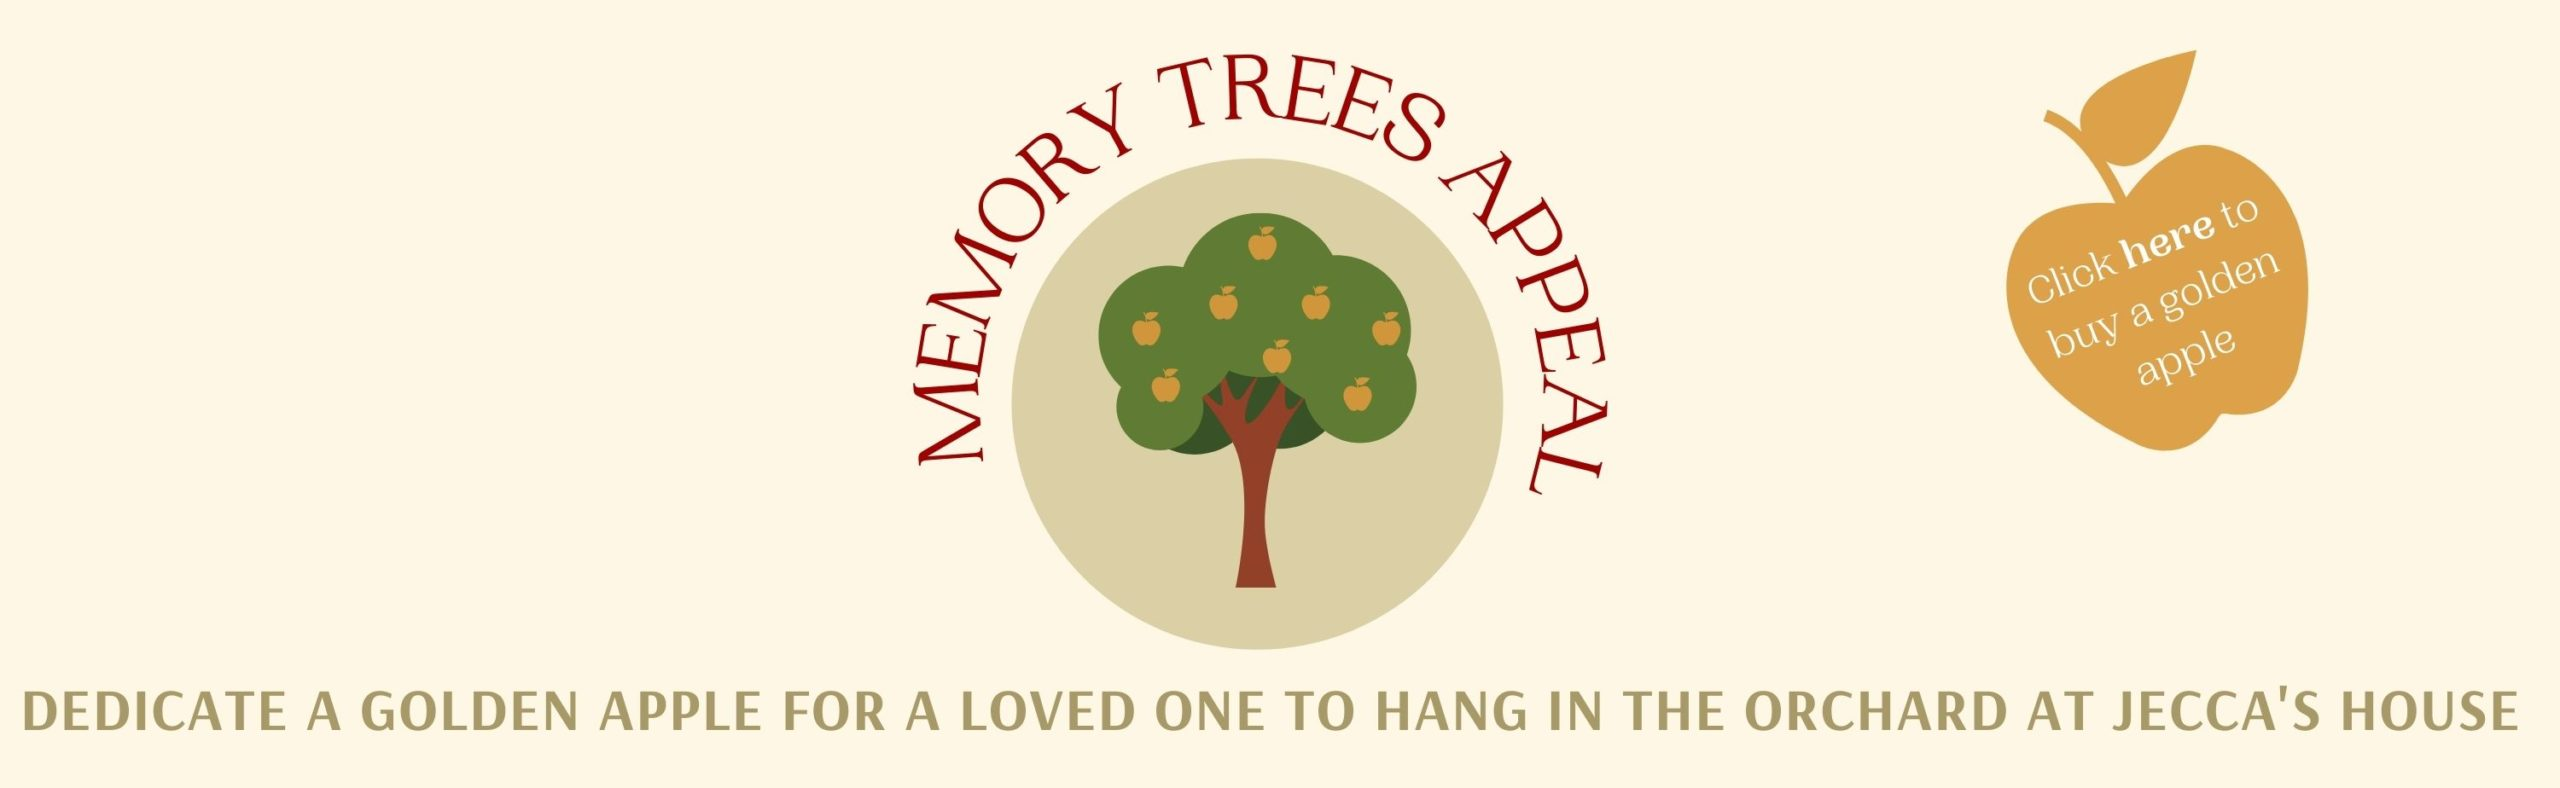 Memory Trees Appeal, Campden Home Nursing